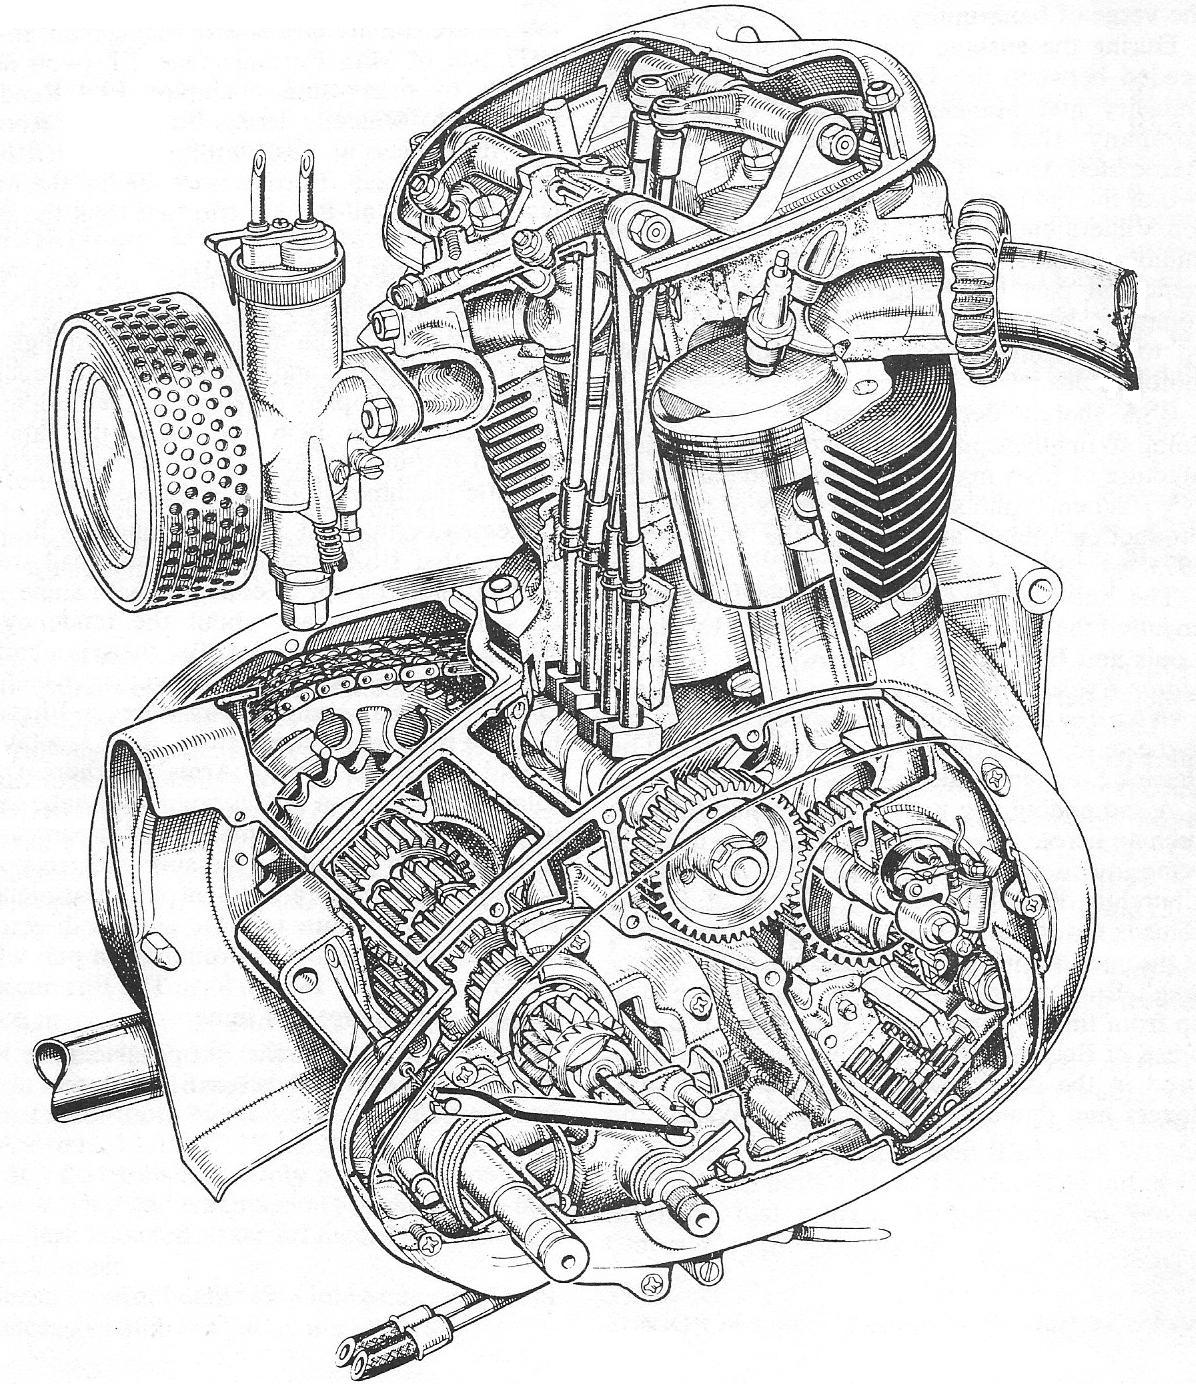 Motorcycle Engine Drawing at GetDrawings.com   Free for personal use ...